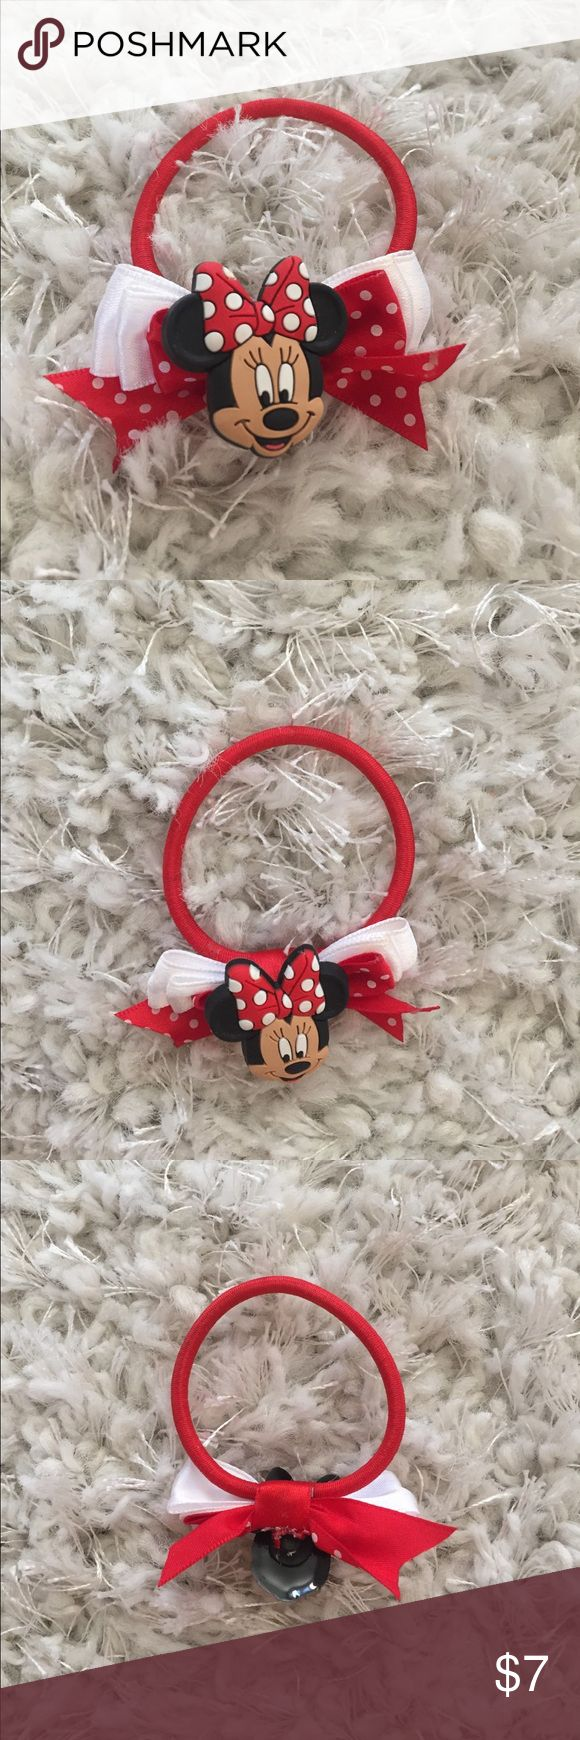 Disney Minnie Ear Bow Hair Elastic Ponytail Holder Disney Minnie Ear Bow Hair Elastic Ponytail Holder. Never used. Purchased at Disneyland. Disney Accessories Hair Accessories